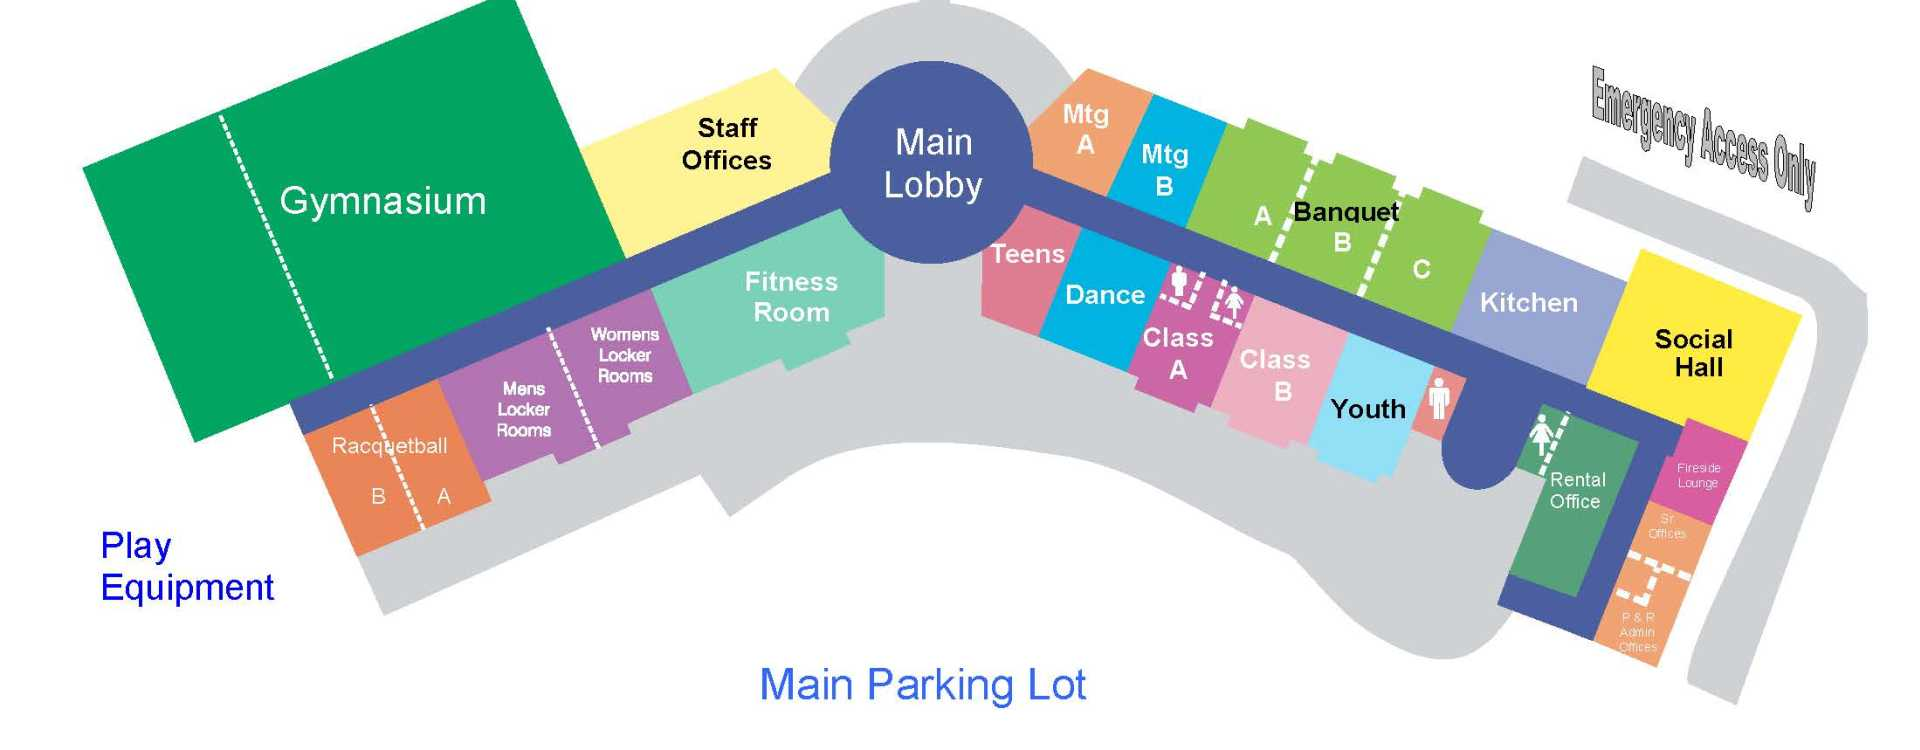 Meeting & Event Space Diagram